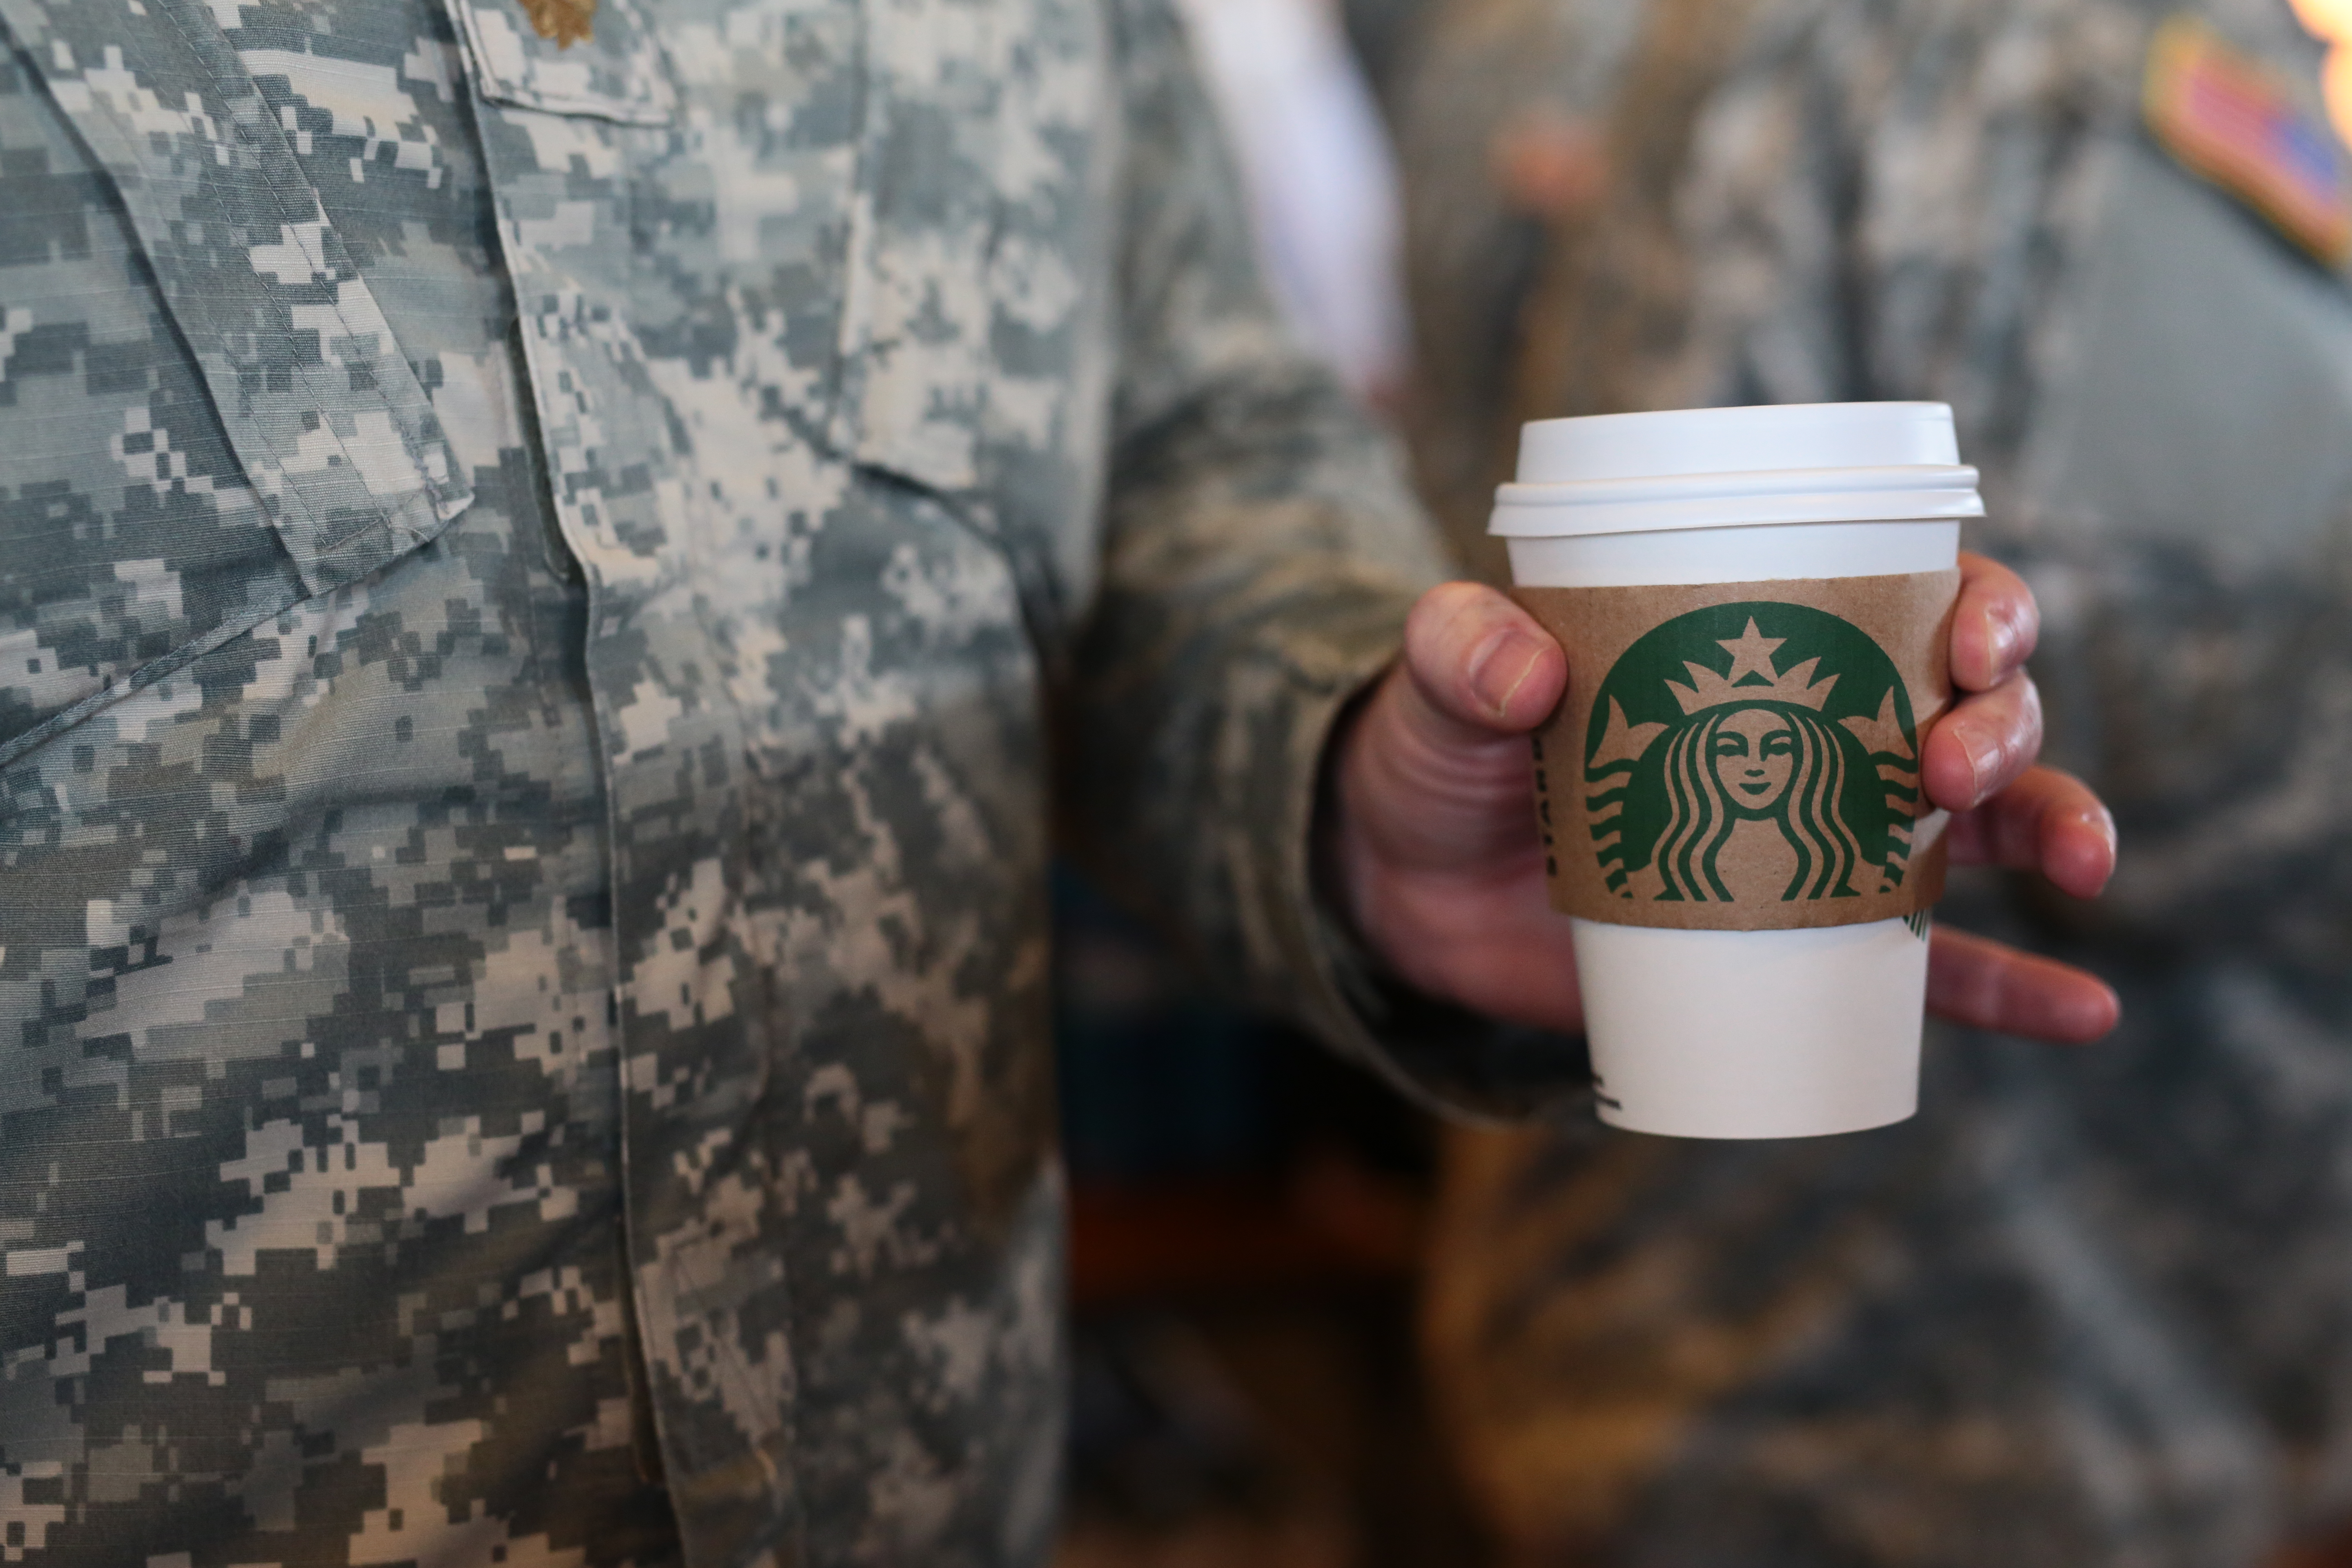 Veterans can also get free coffee on Wednesday.